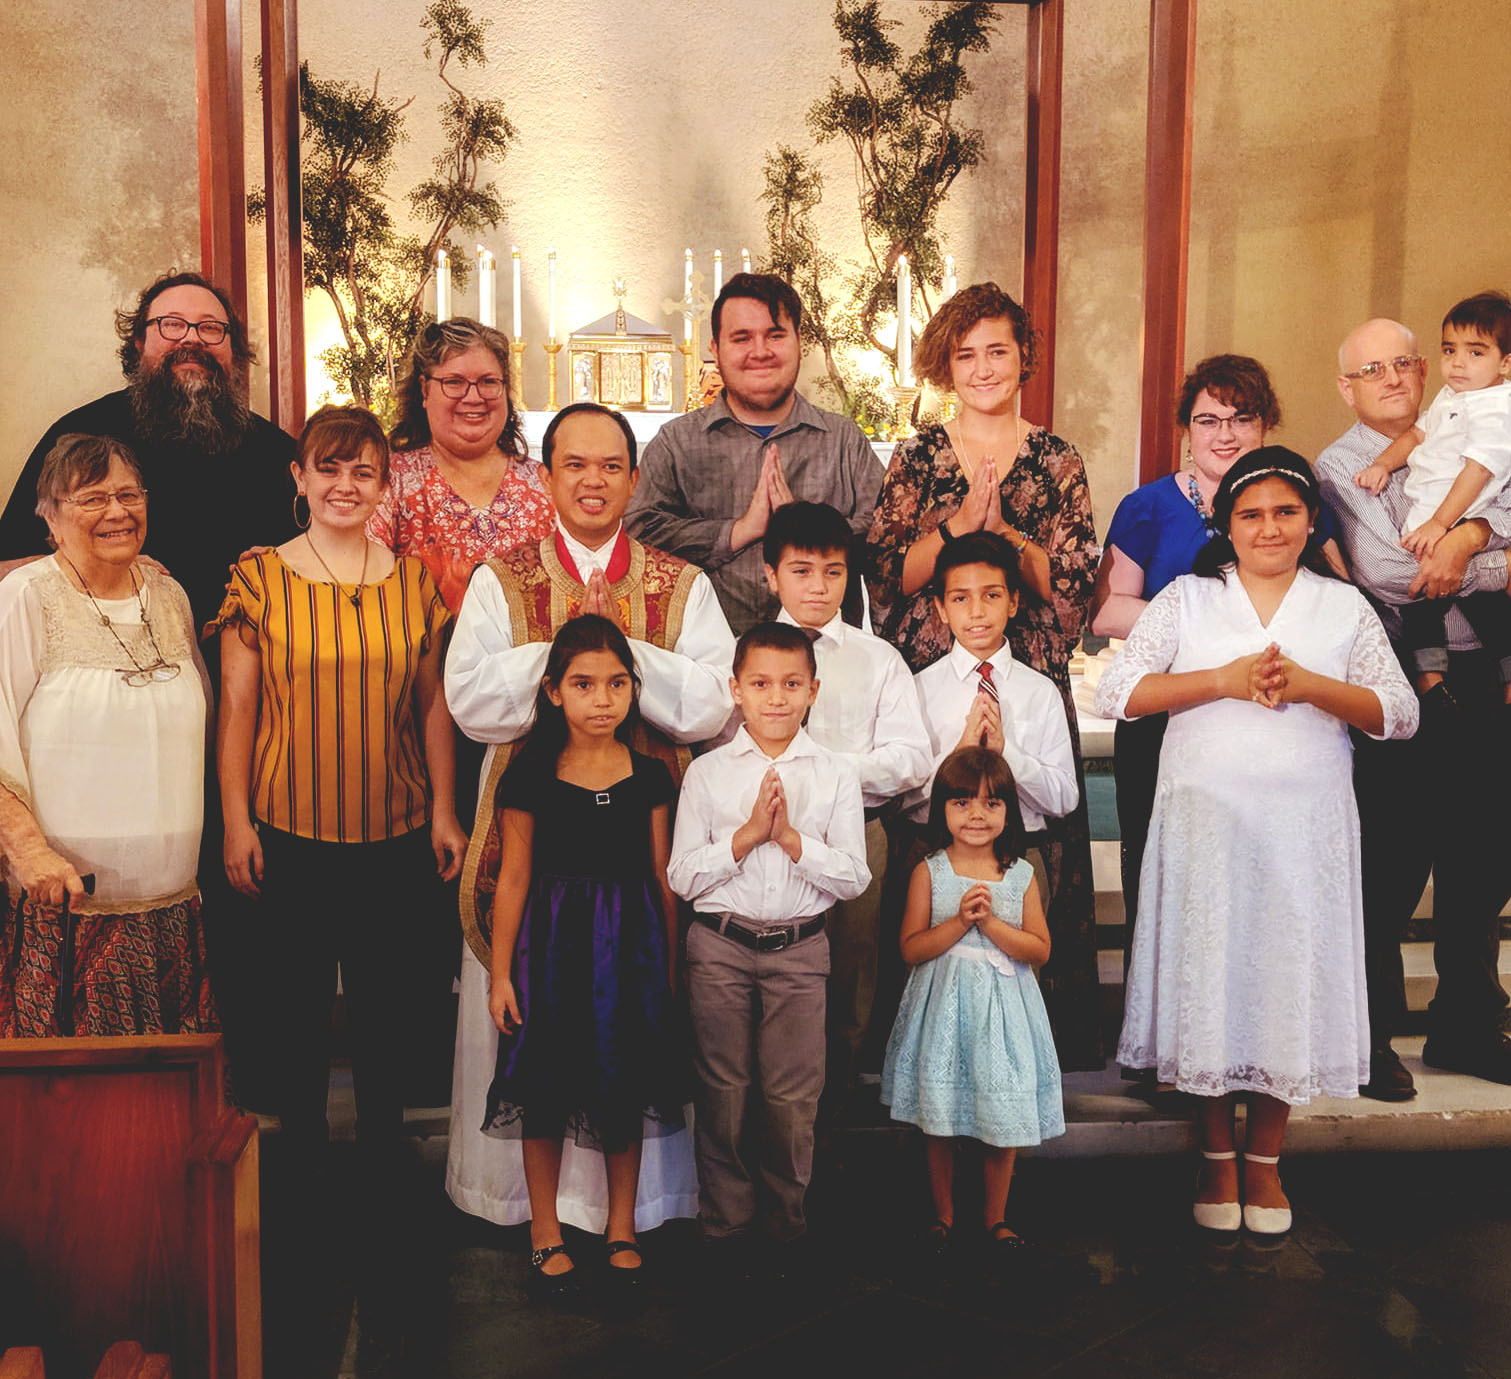 Once again, my favorite pic - my whole family together in church, as it should be.